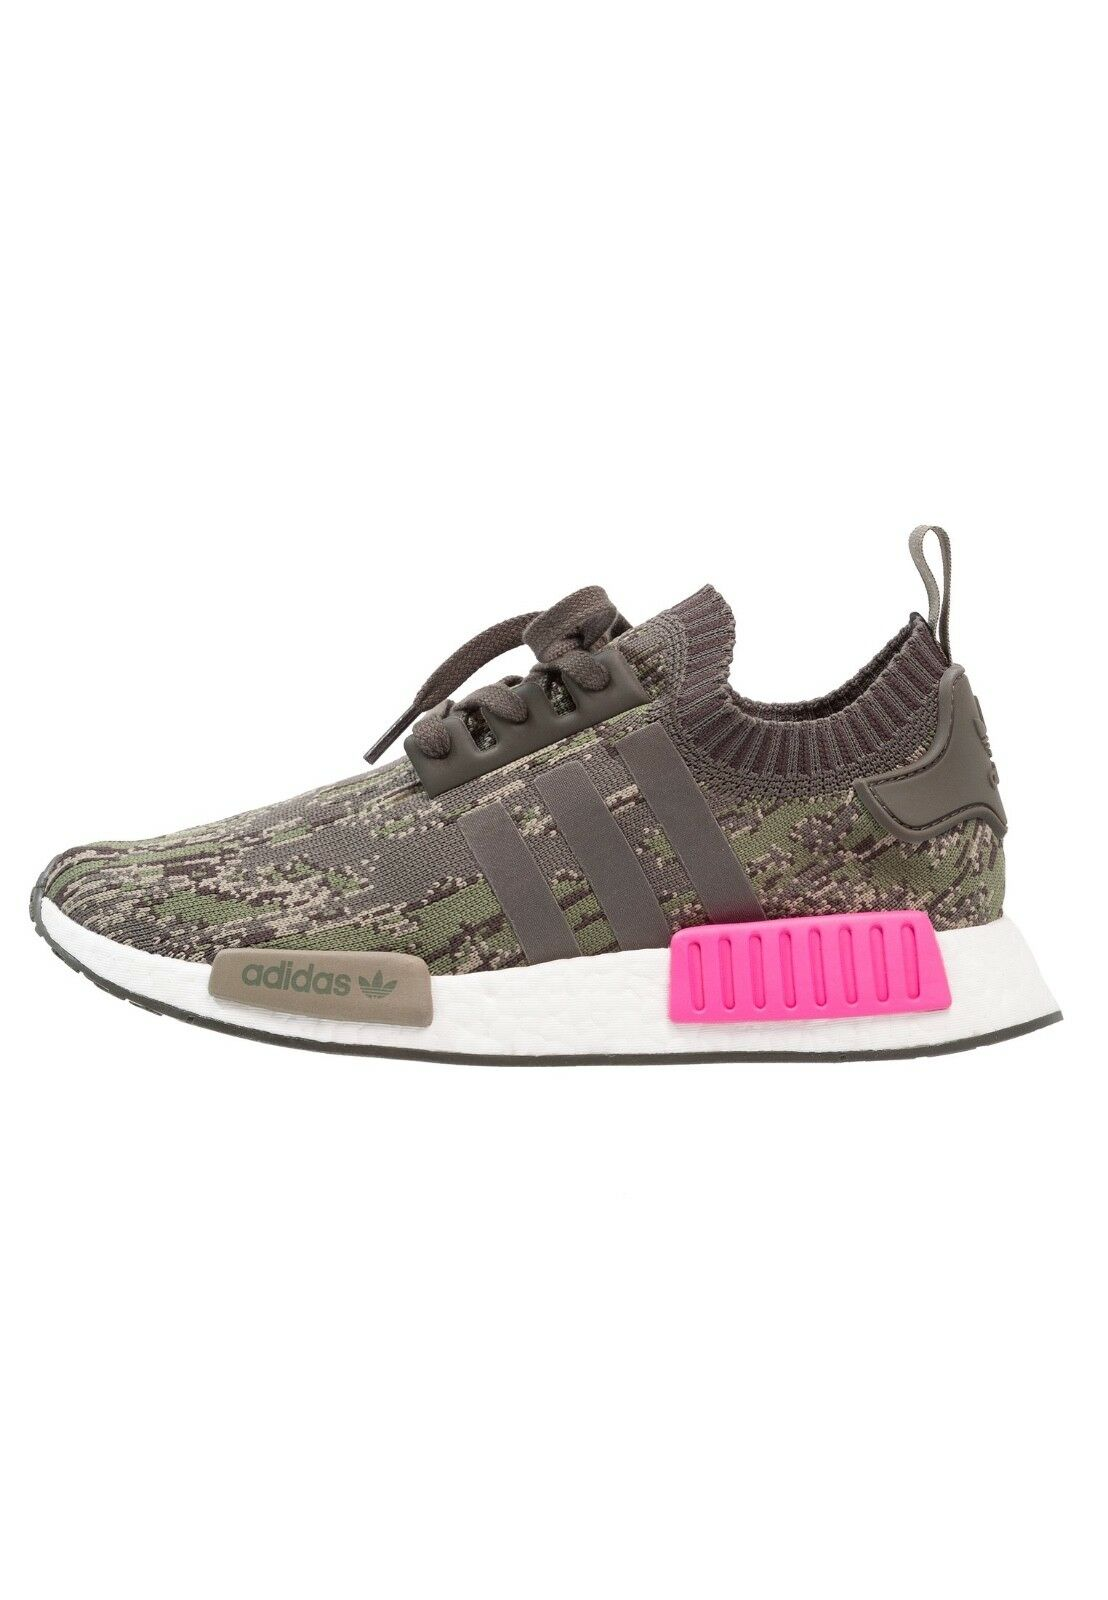 Adidas NMD R1 A Taille Ma Maniere x Invincible Cashmere Taille A UK10/US10.5/EU44⅔ 9cbe38